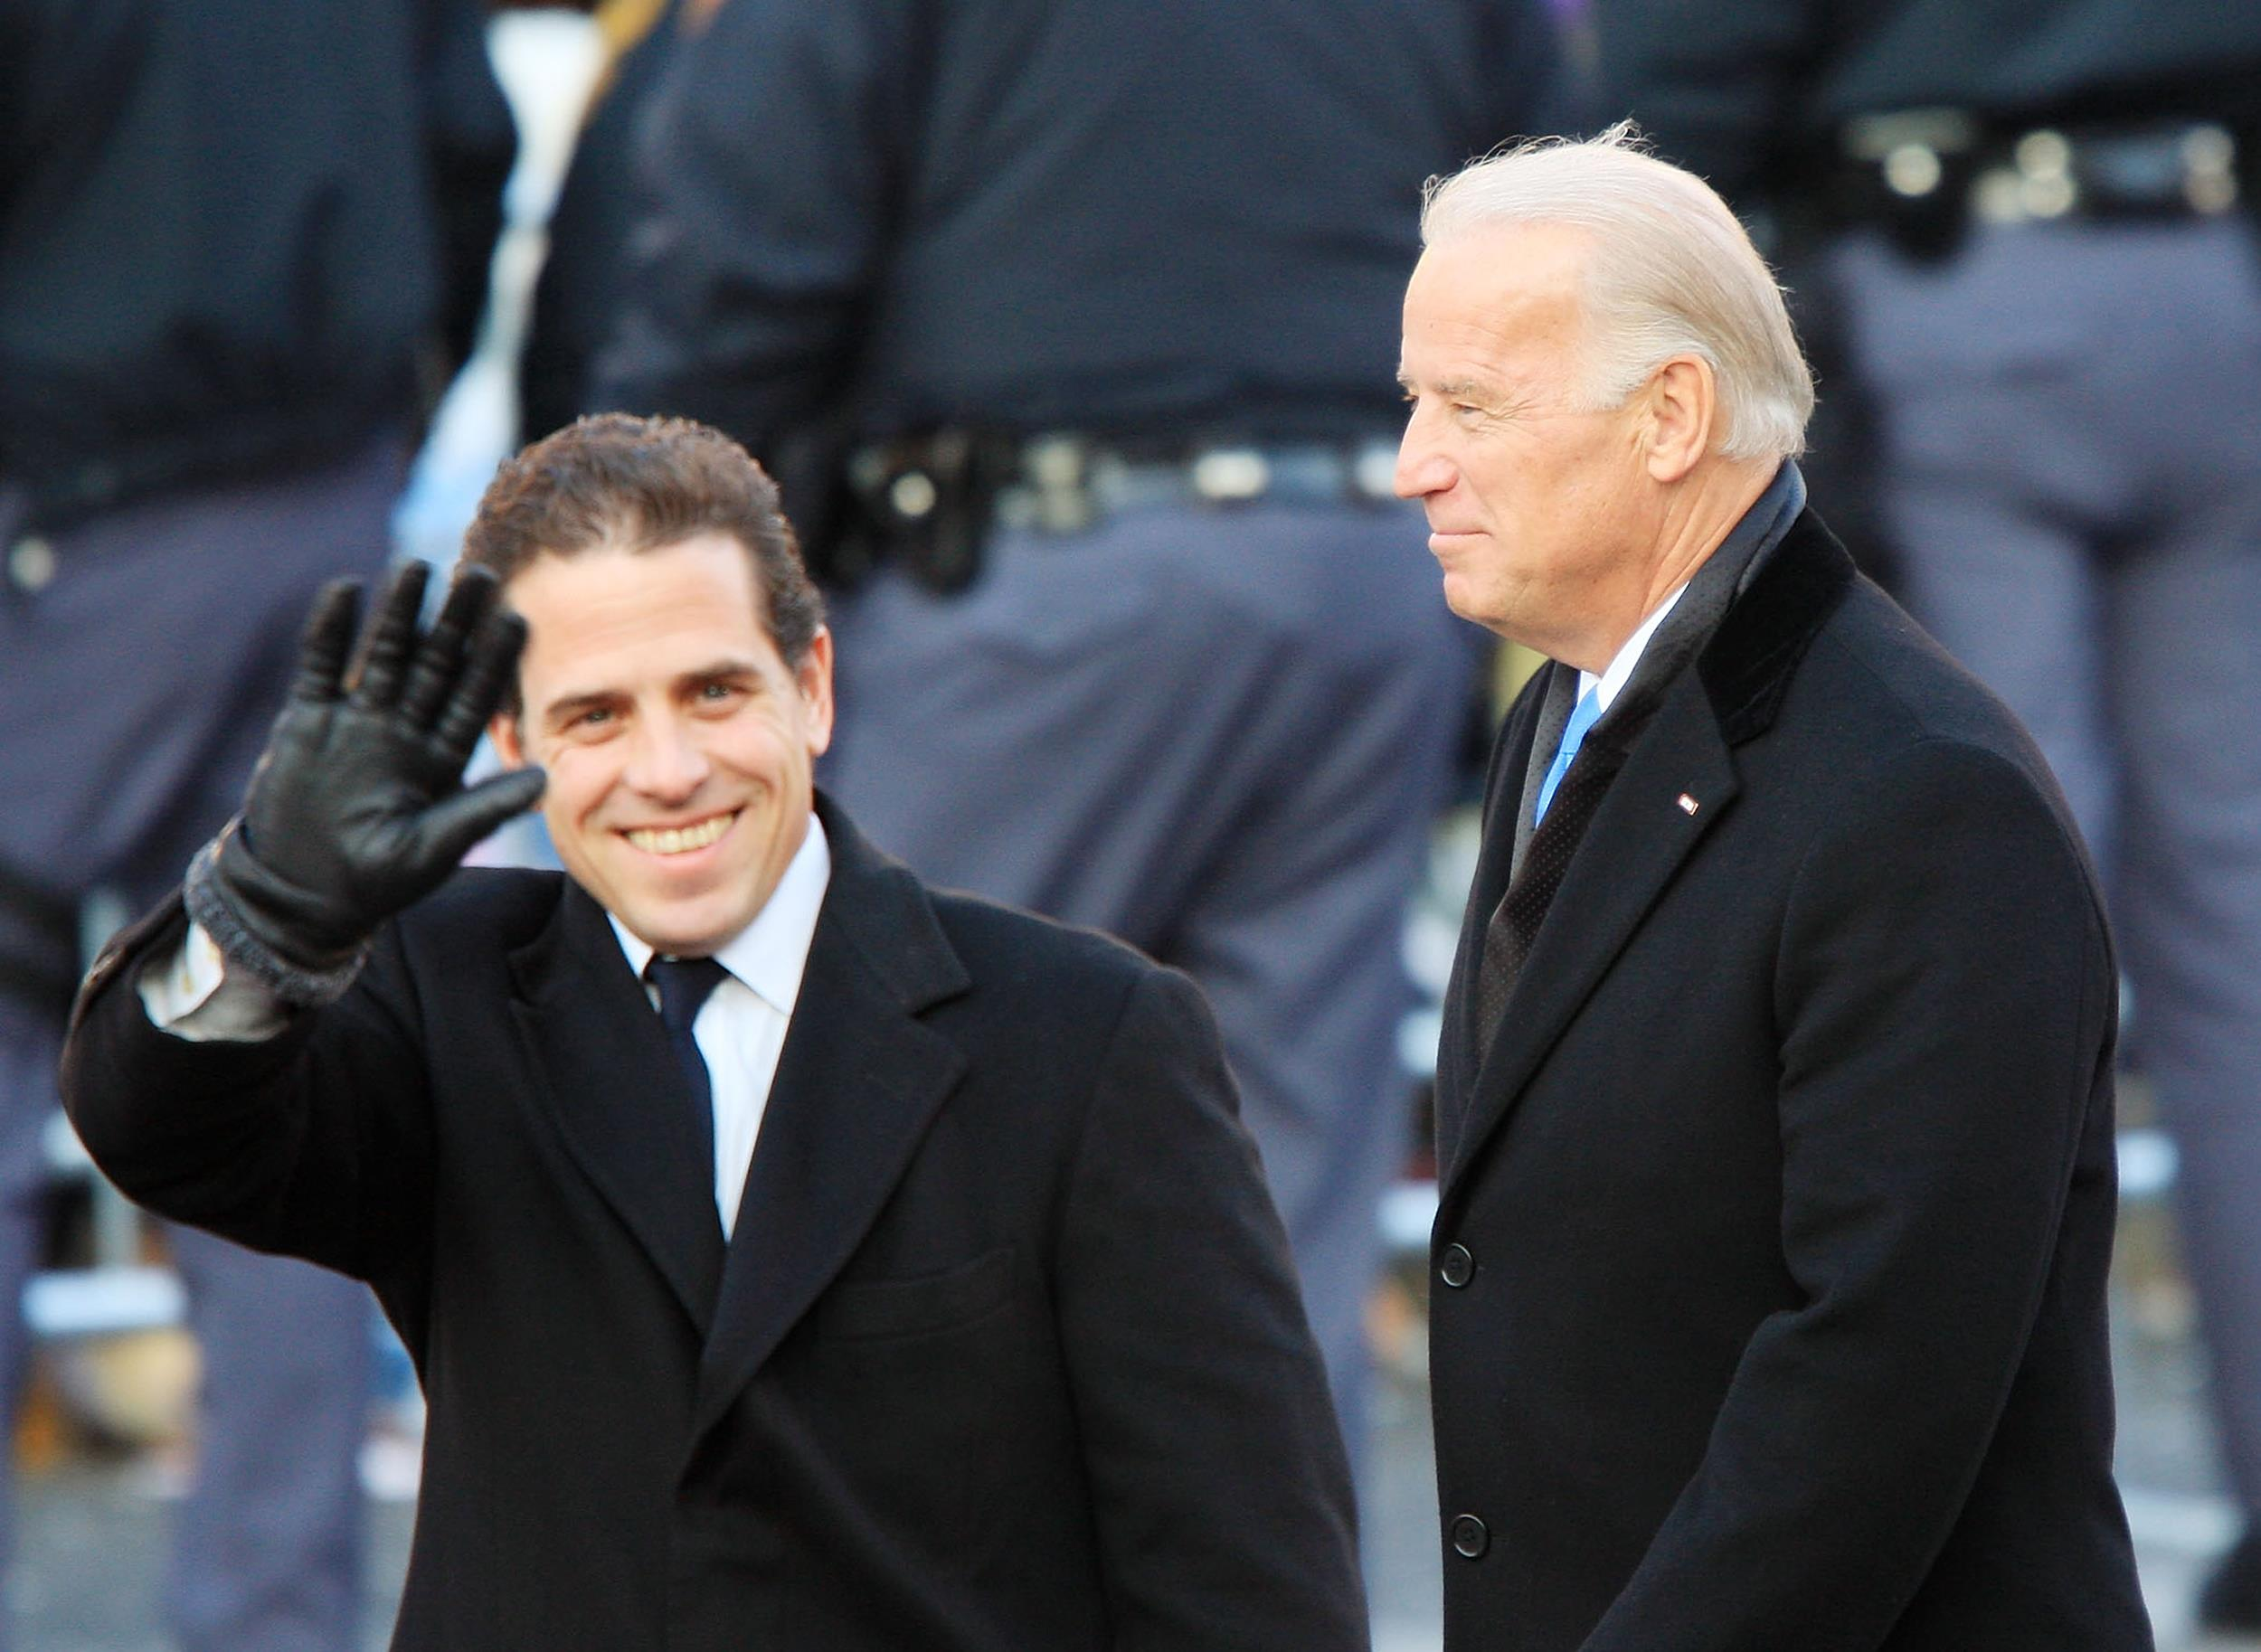 Was Joe Biden's Son Part of a Chinese Spy Operation to Steal U.S. Nuclear Technology?